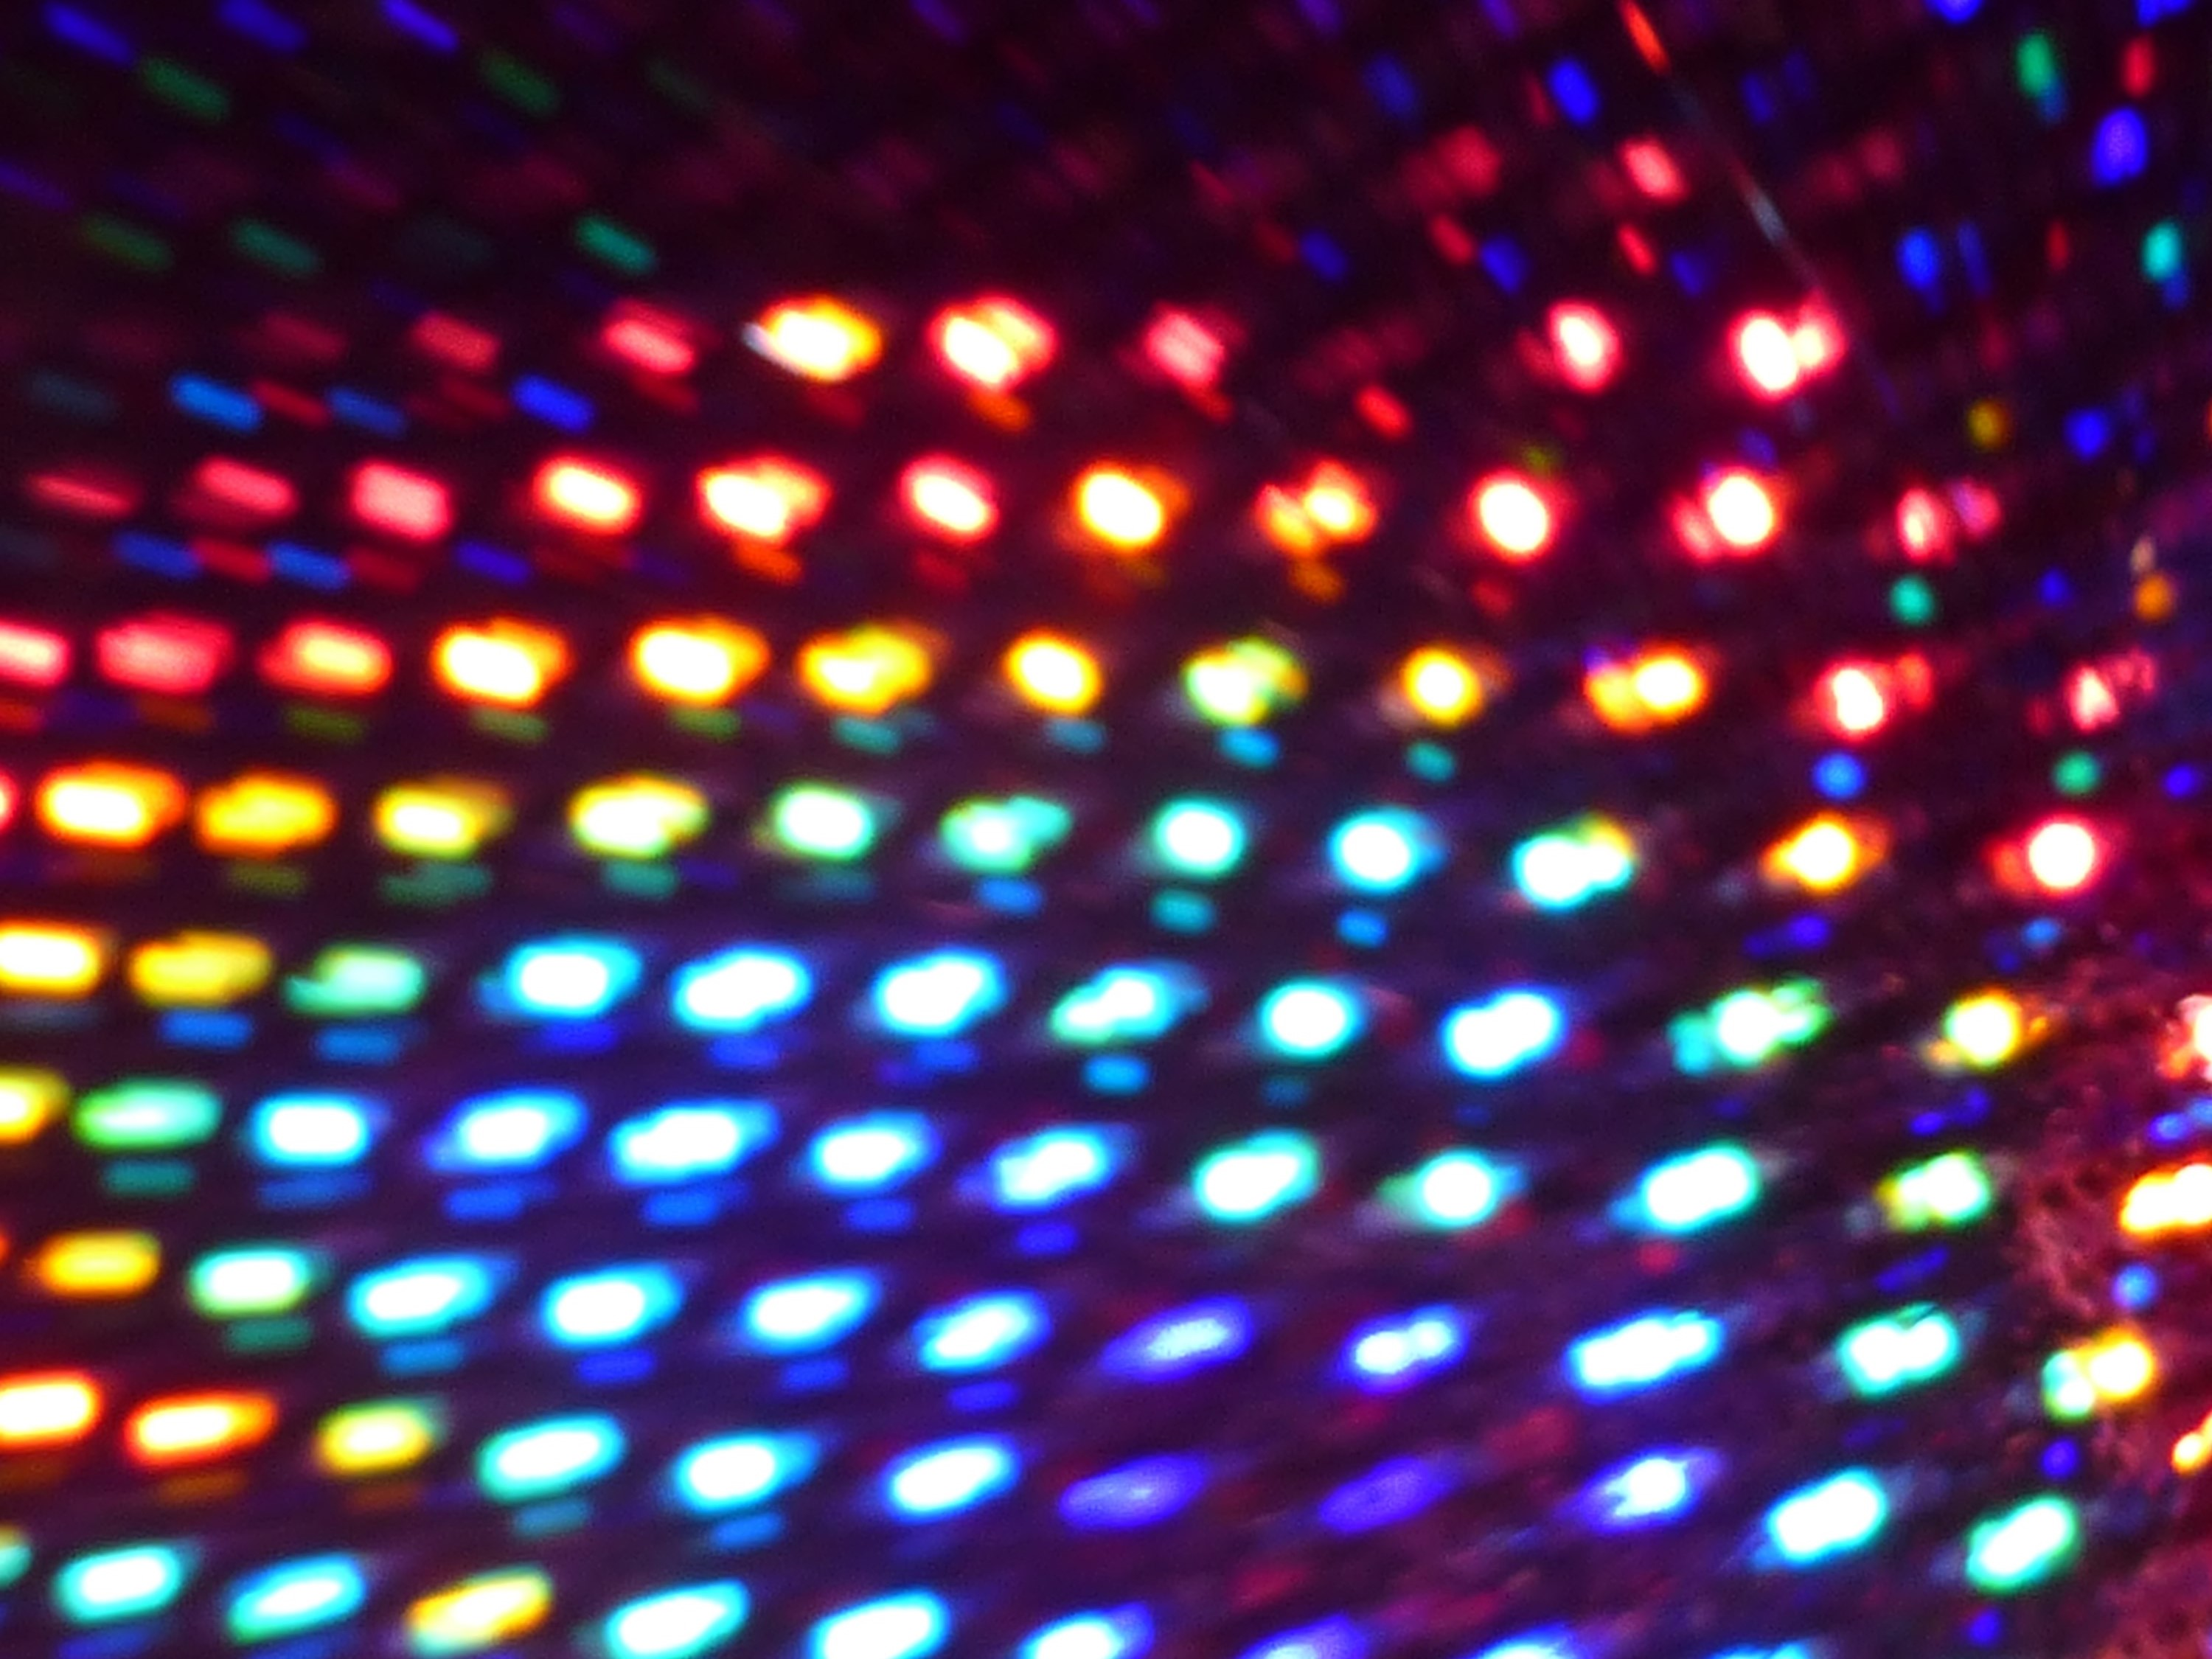 background image featuring an array of colourful lights